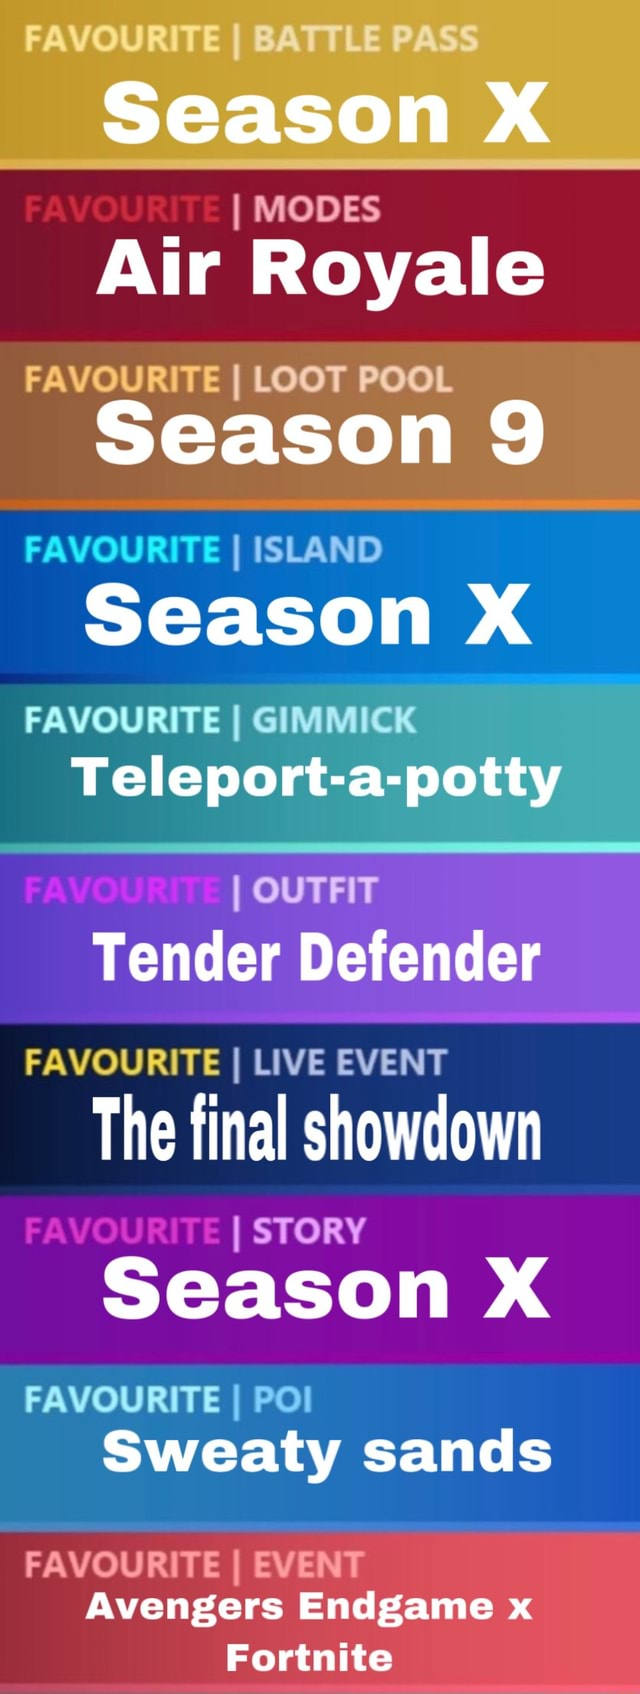 Fortnite Season X Loot Pool I Modes Air Royale Favourite I Loot Pool Season 9 Favourite I Island 1 Season X Favourite I Gimmick Teleport A Potty I Outfit Tender Defender Favourite I Live Event The Final Showdown I